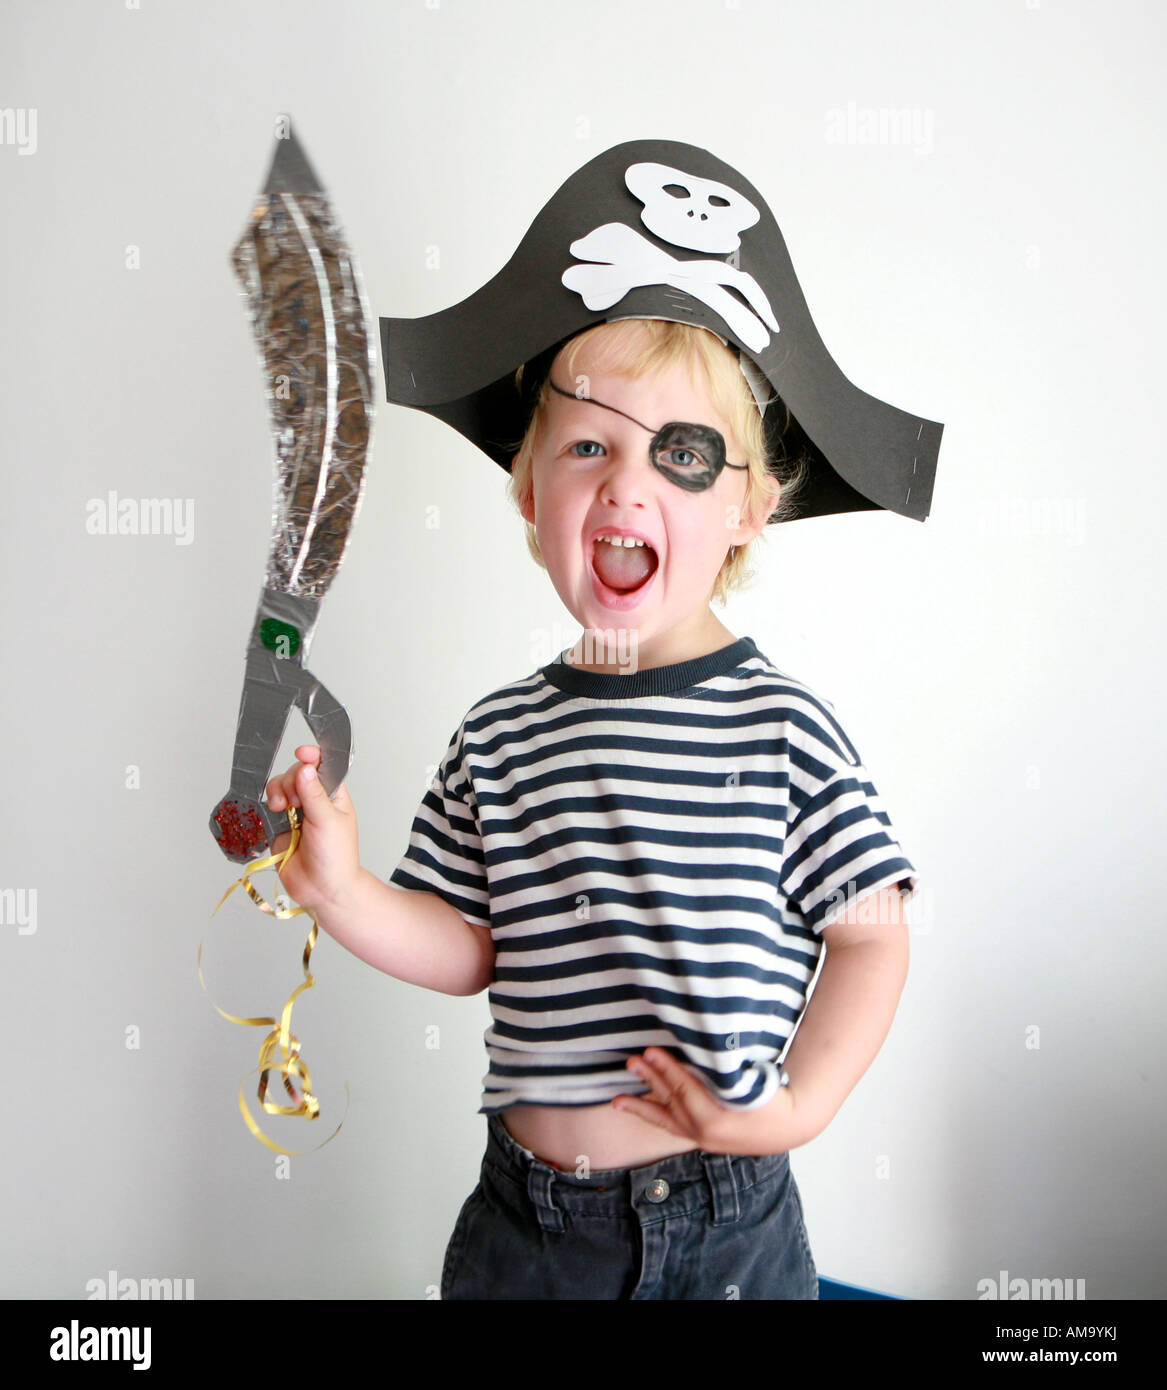 Boy Dressed As A Pirate - Stock Image